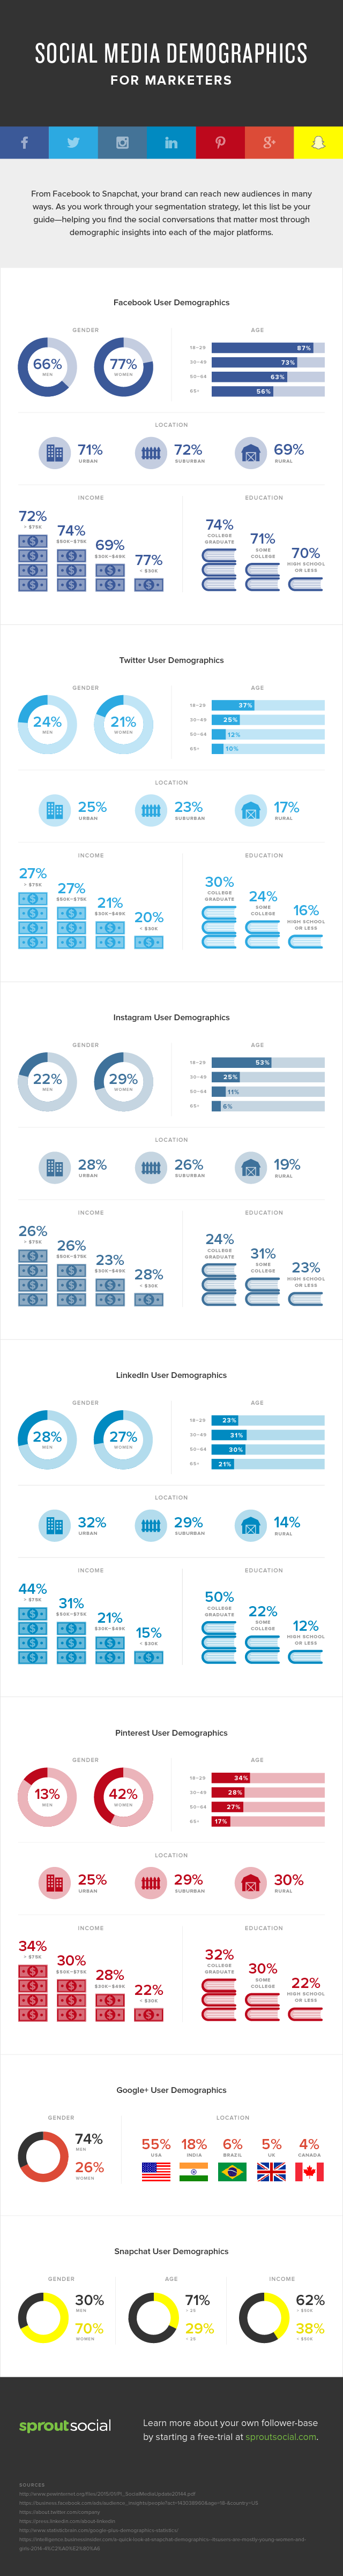 SocialMedia Demographics For Marketers